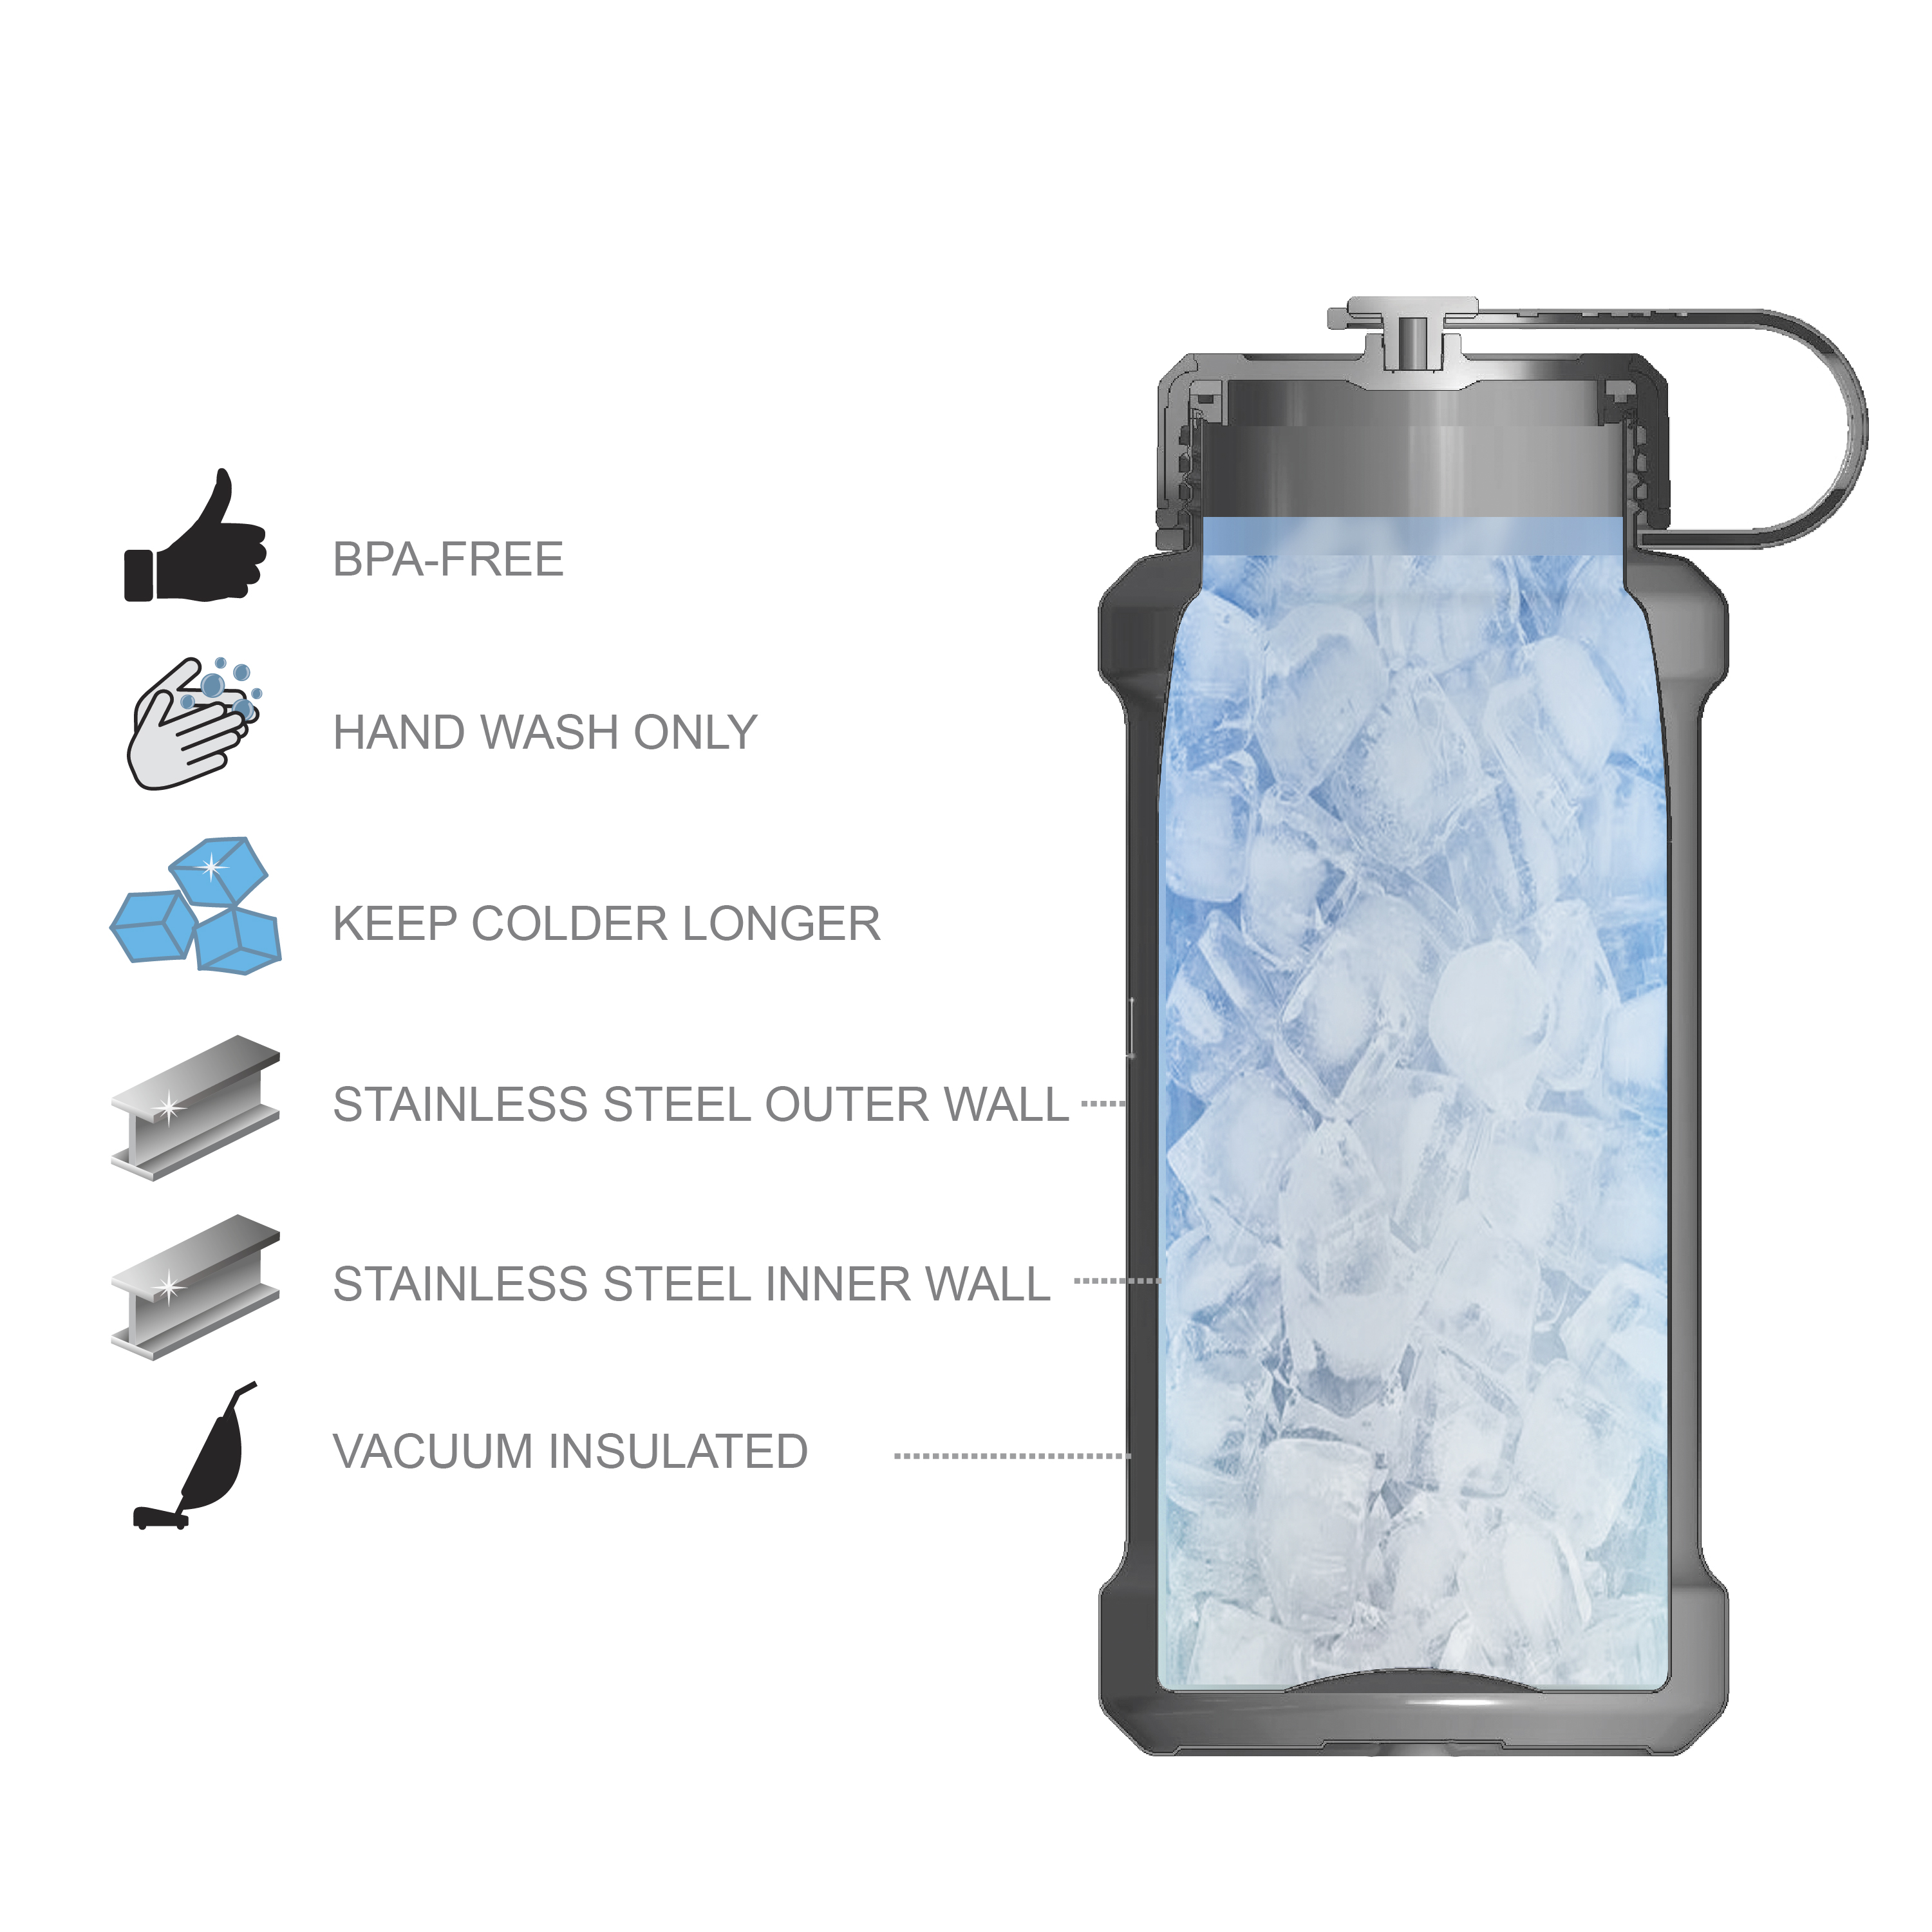 XBOX 24 ounce Stainless Steel Insulated Water Bottle, Halo slideshow image 6